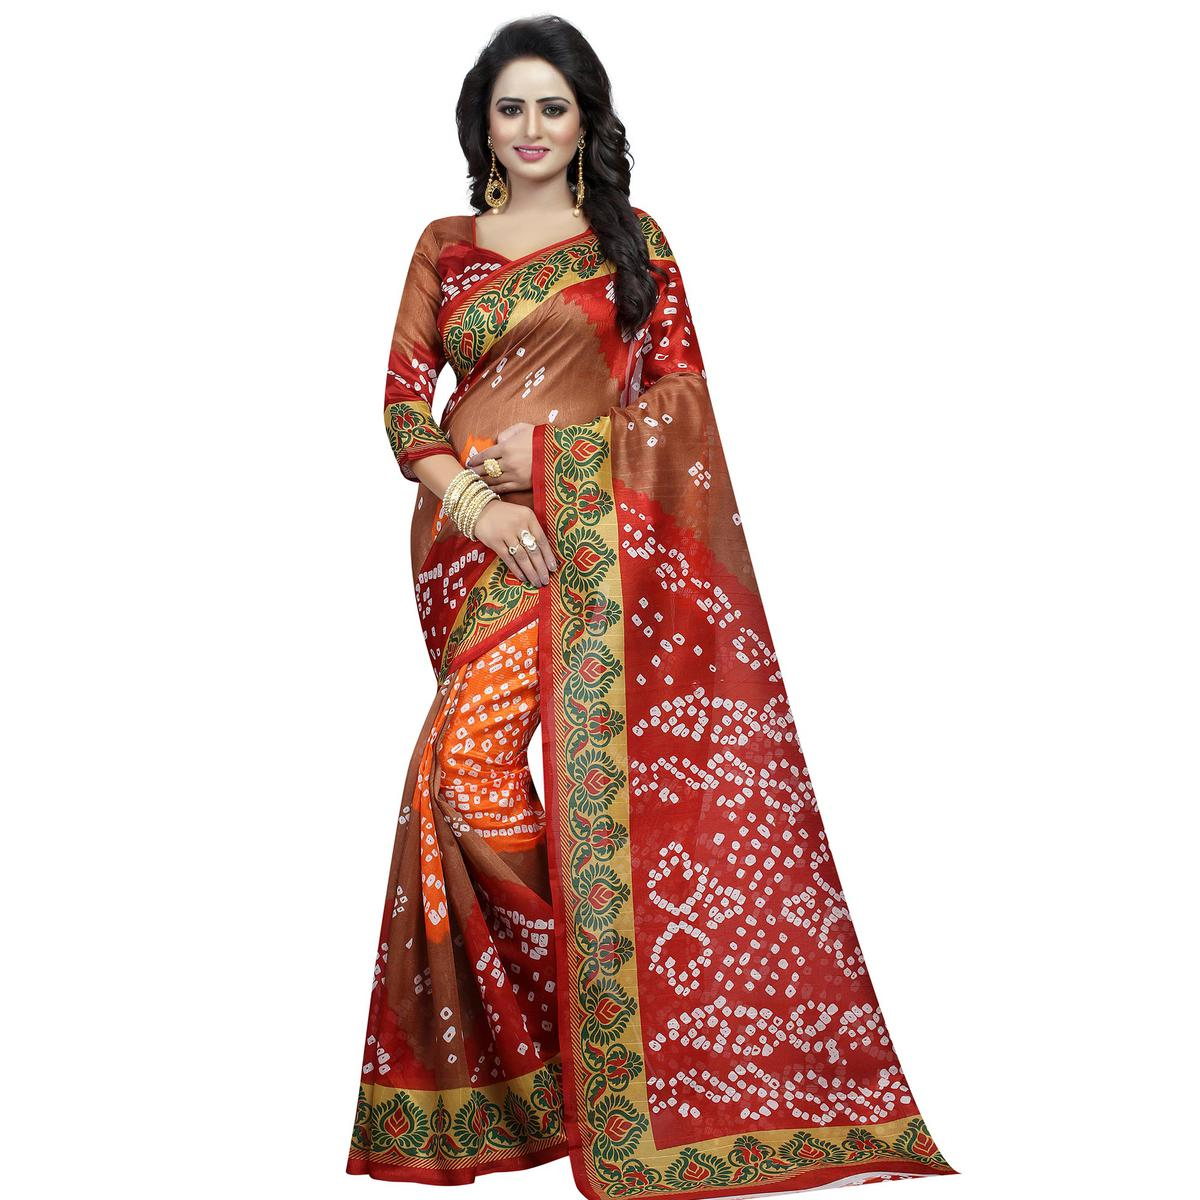 Ravishing Brown - Red Colored Casual Wear Printed Bhagalpuri Silk Saree